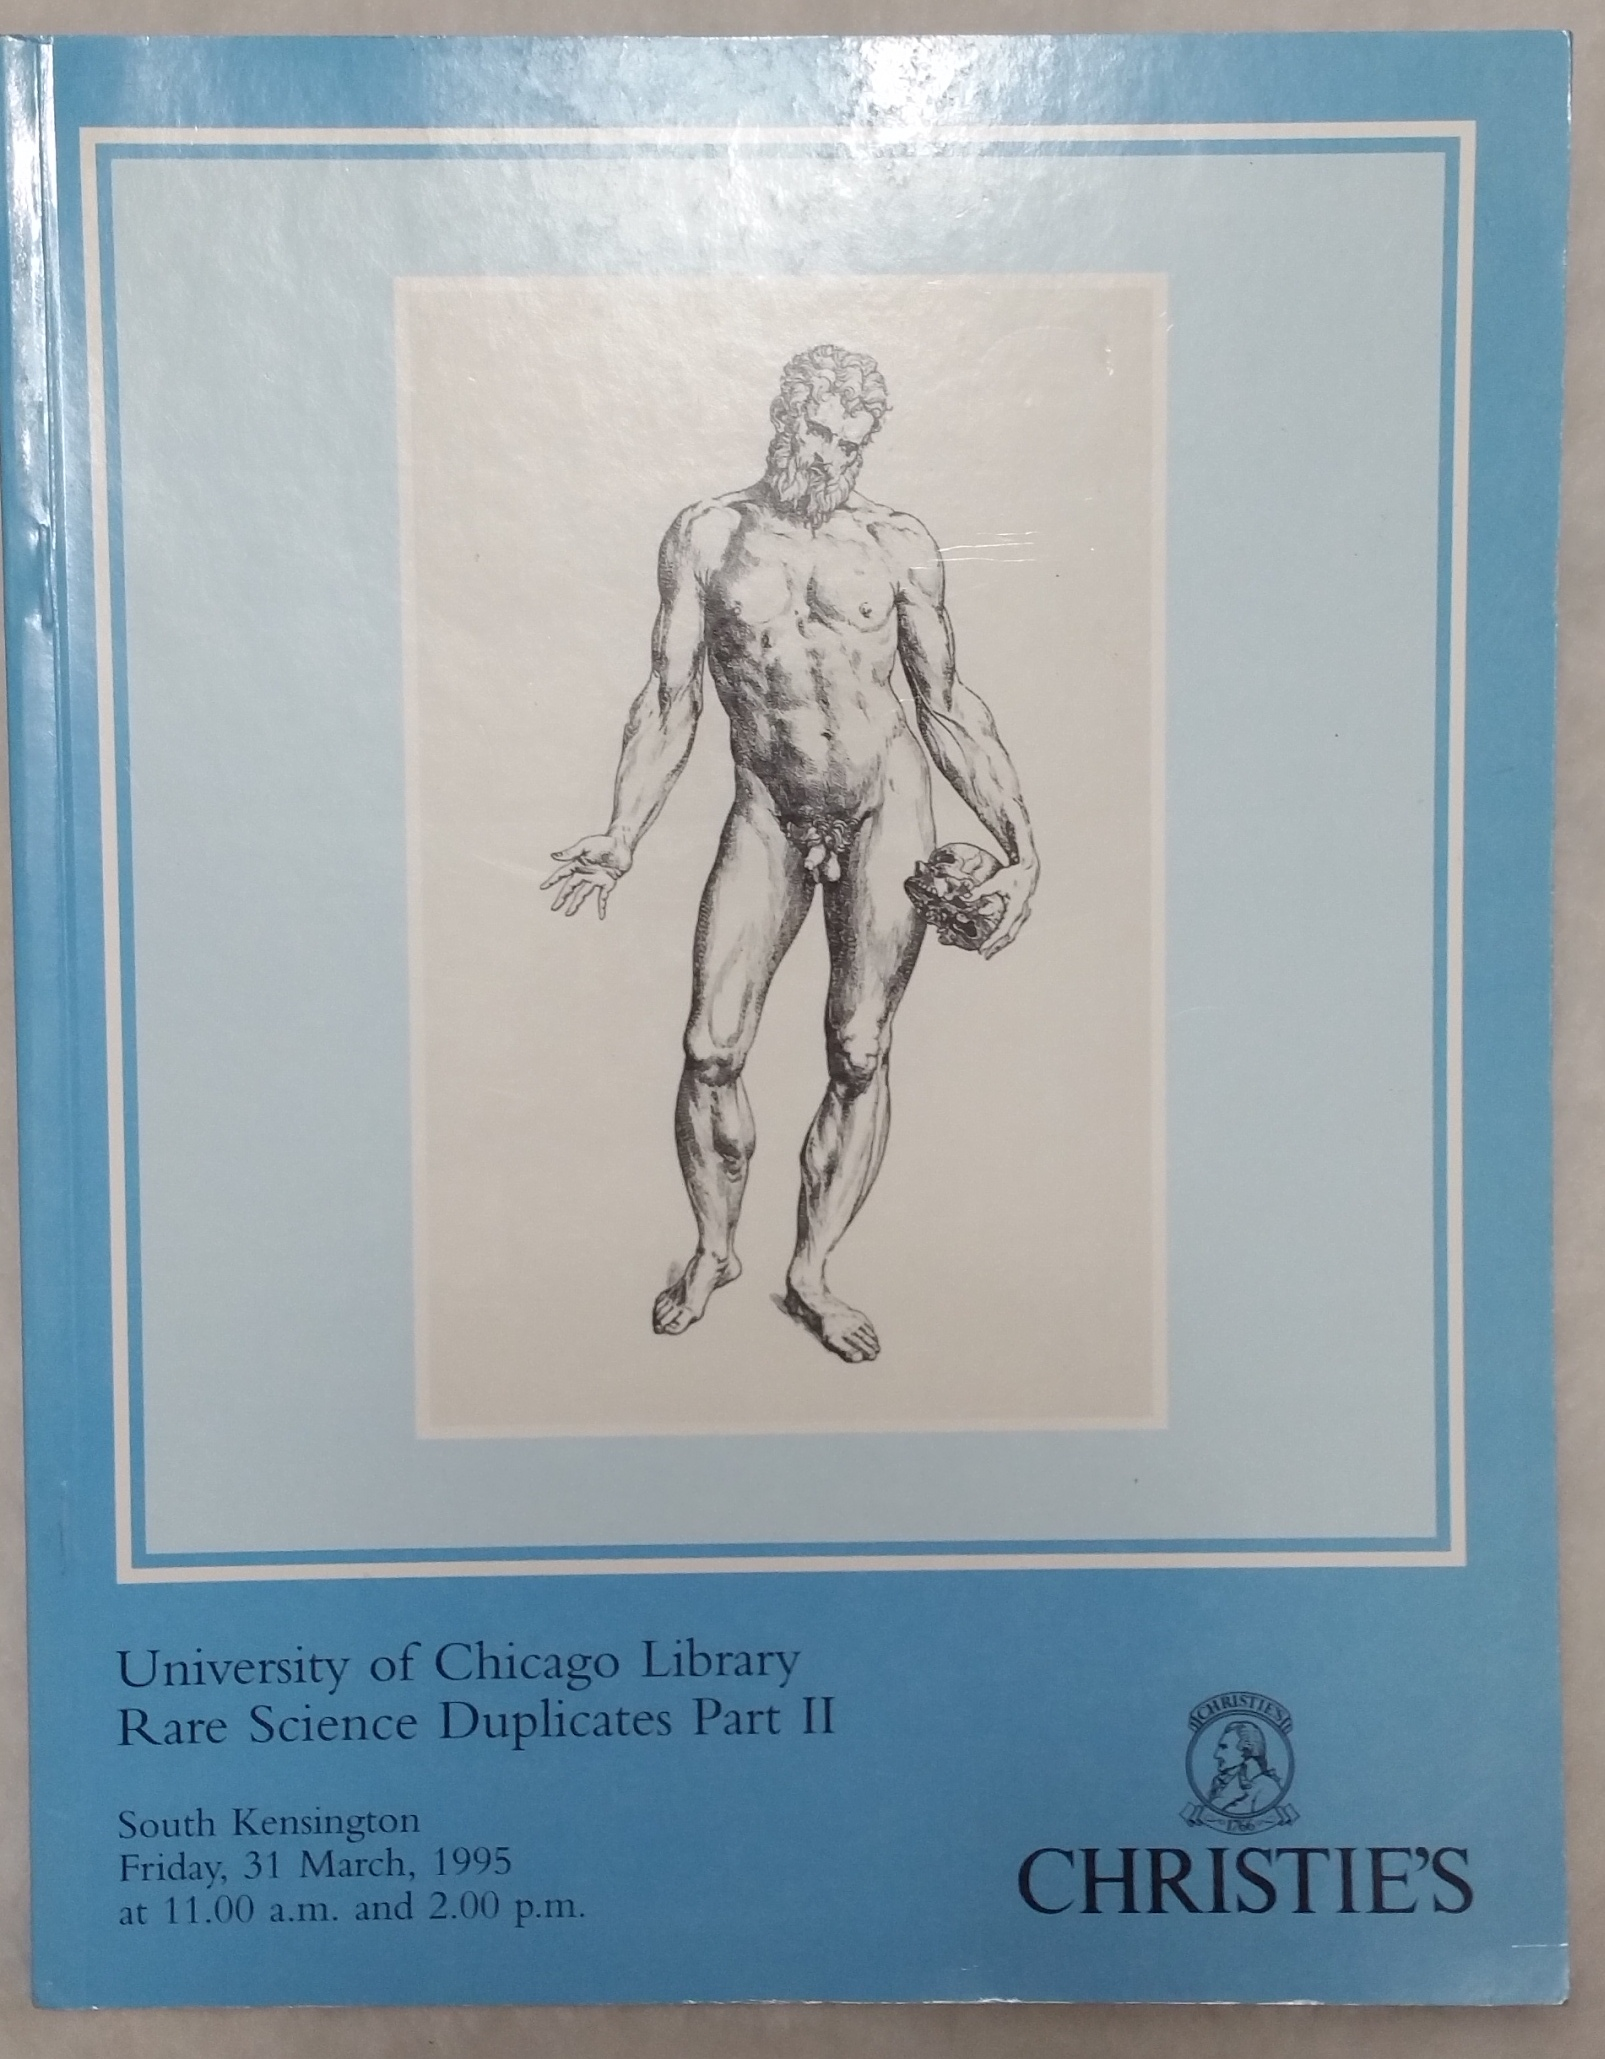 Image for Rare Science Duplicates, resulting from the merger of the University of Chicago Library and the John Crerar Library, Pt. II (Christie's South Kensington Ltd, Friday, 31 March, 1995))